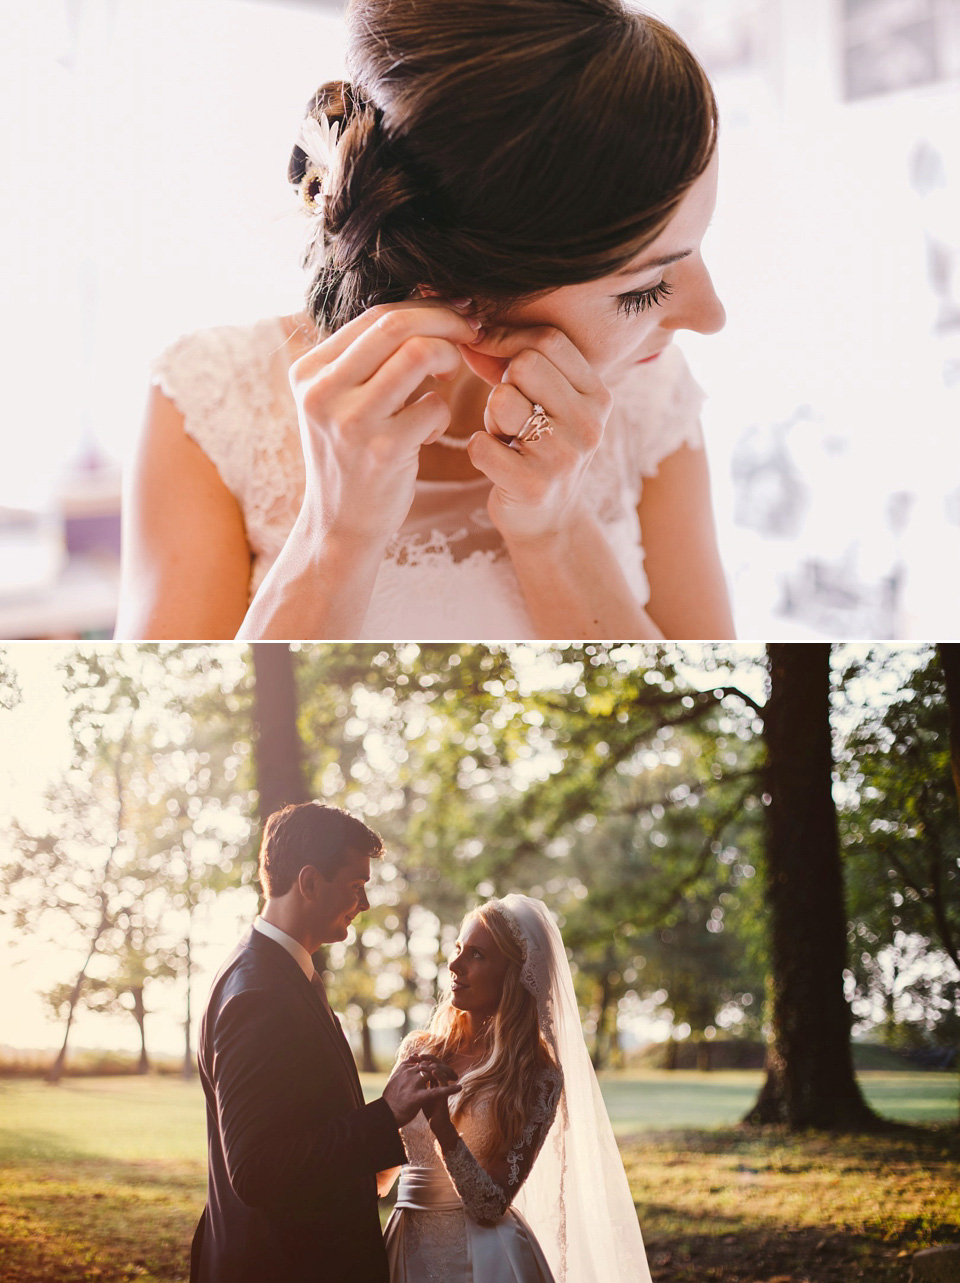 Win £500 Towards Your Wedding With Wedding Photography Select (Get Inspired Supplier Spotlight )